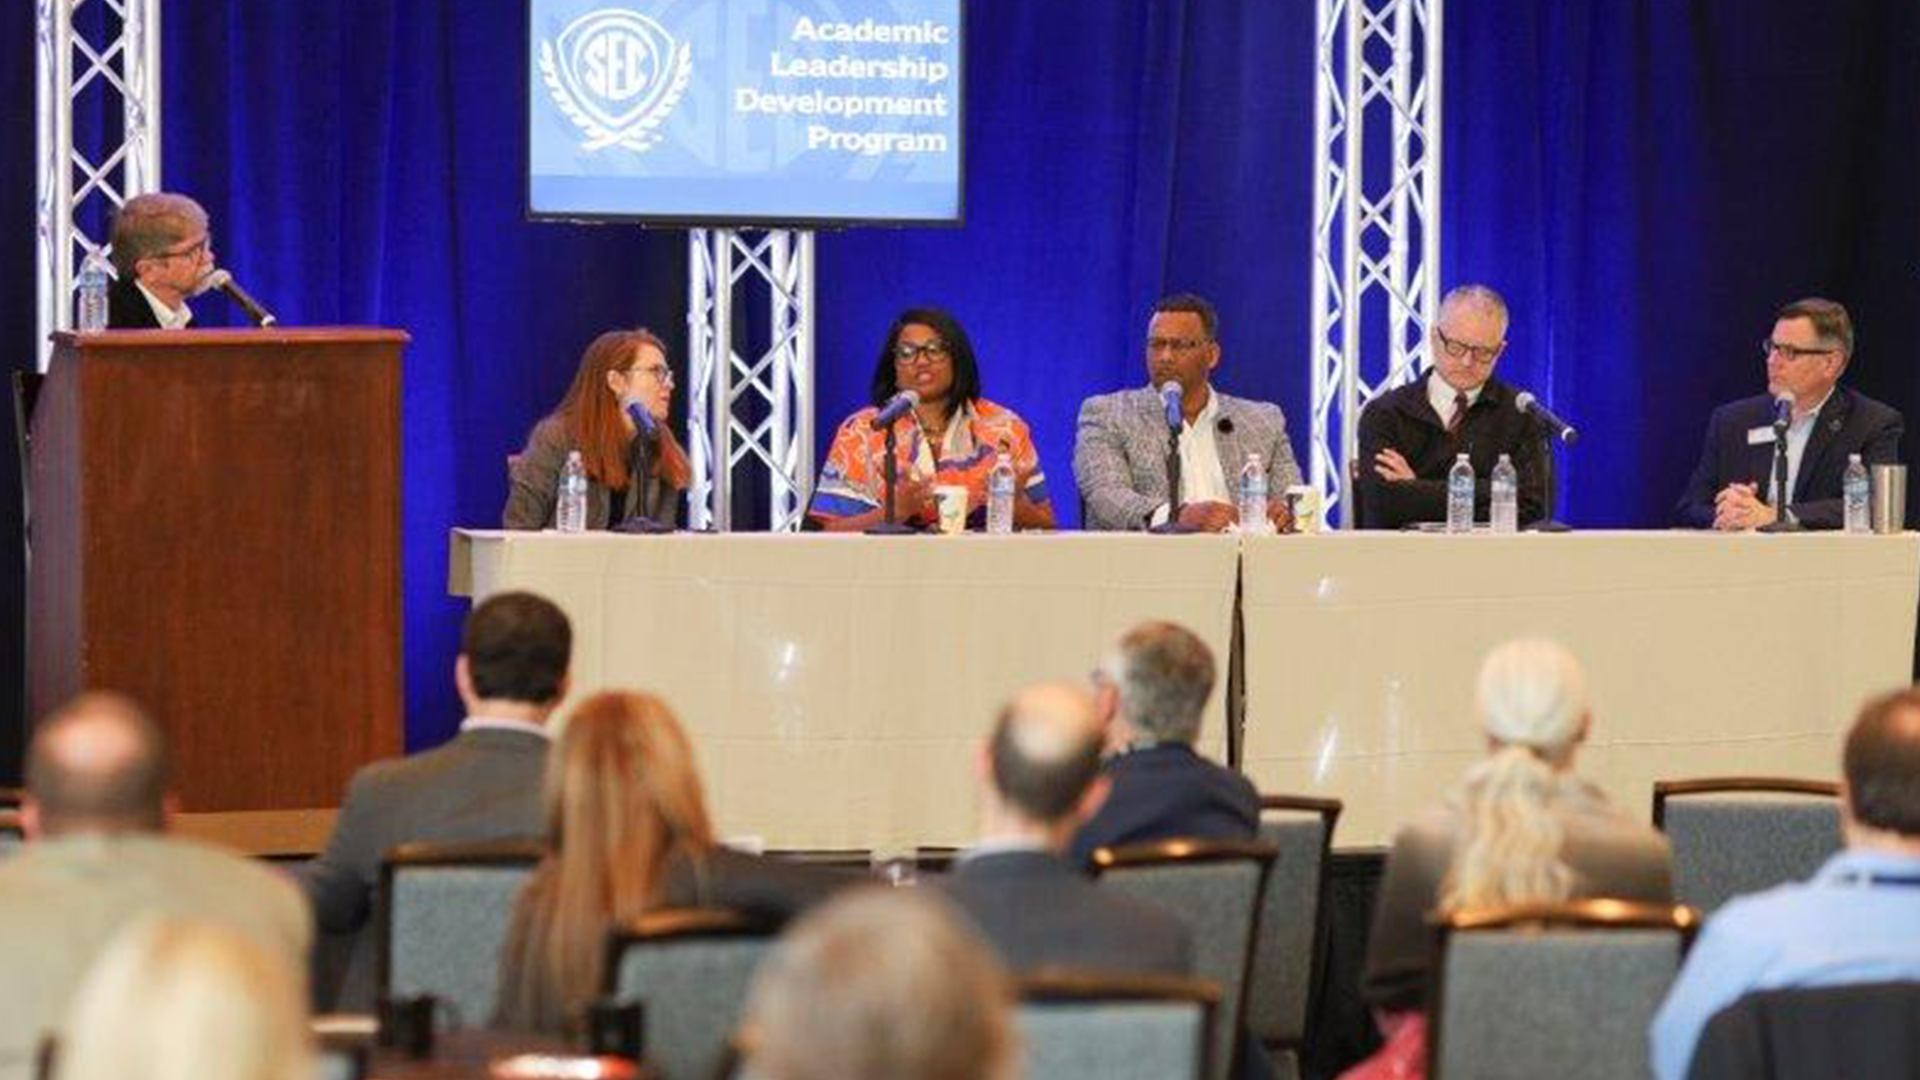 SEC Launches Virtual Panel Forum in Academic Leadership Development Program